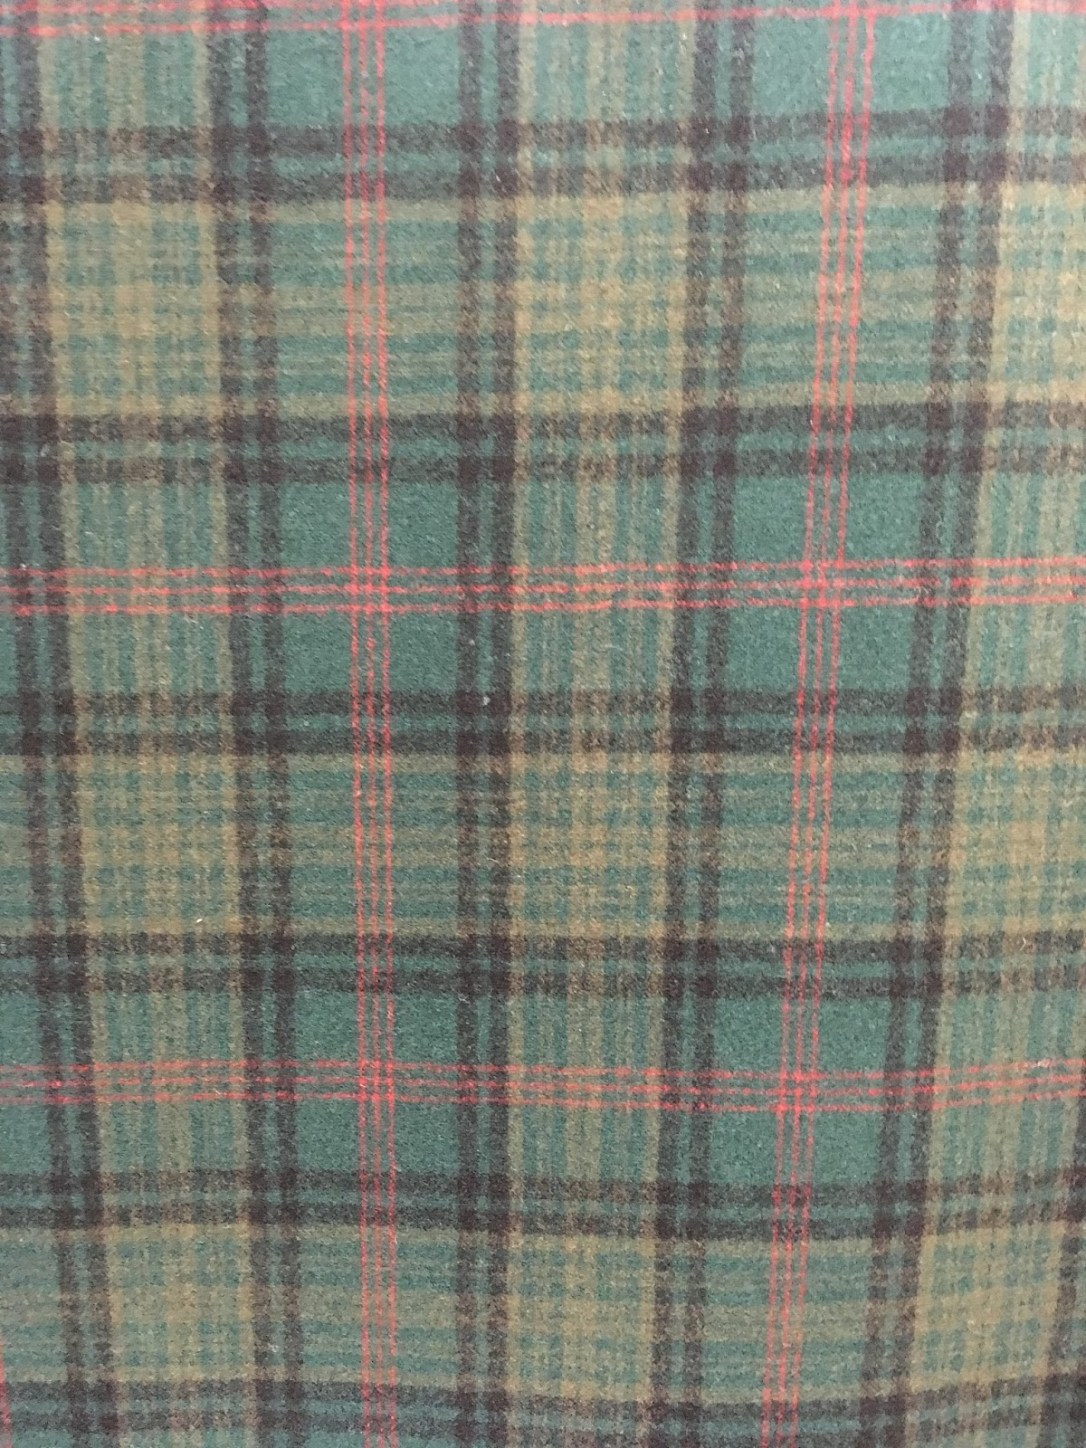 Swatch of Pendleton wool fabric in Ross Hunting Tartan, which is a coral, yellow and taupe plaid on a moss green background.